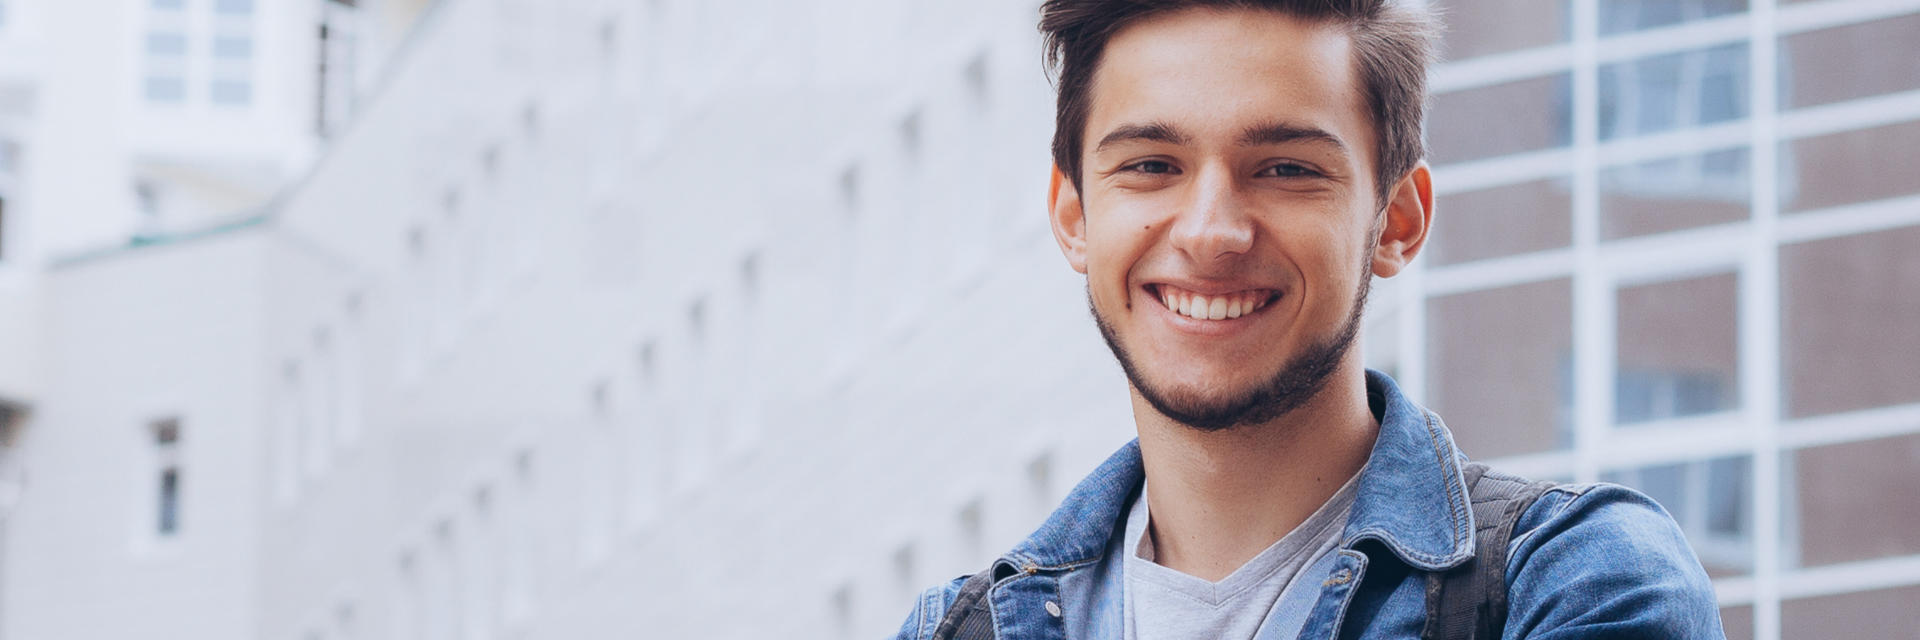 Happy young man with perfect smile in front of office buildings.